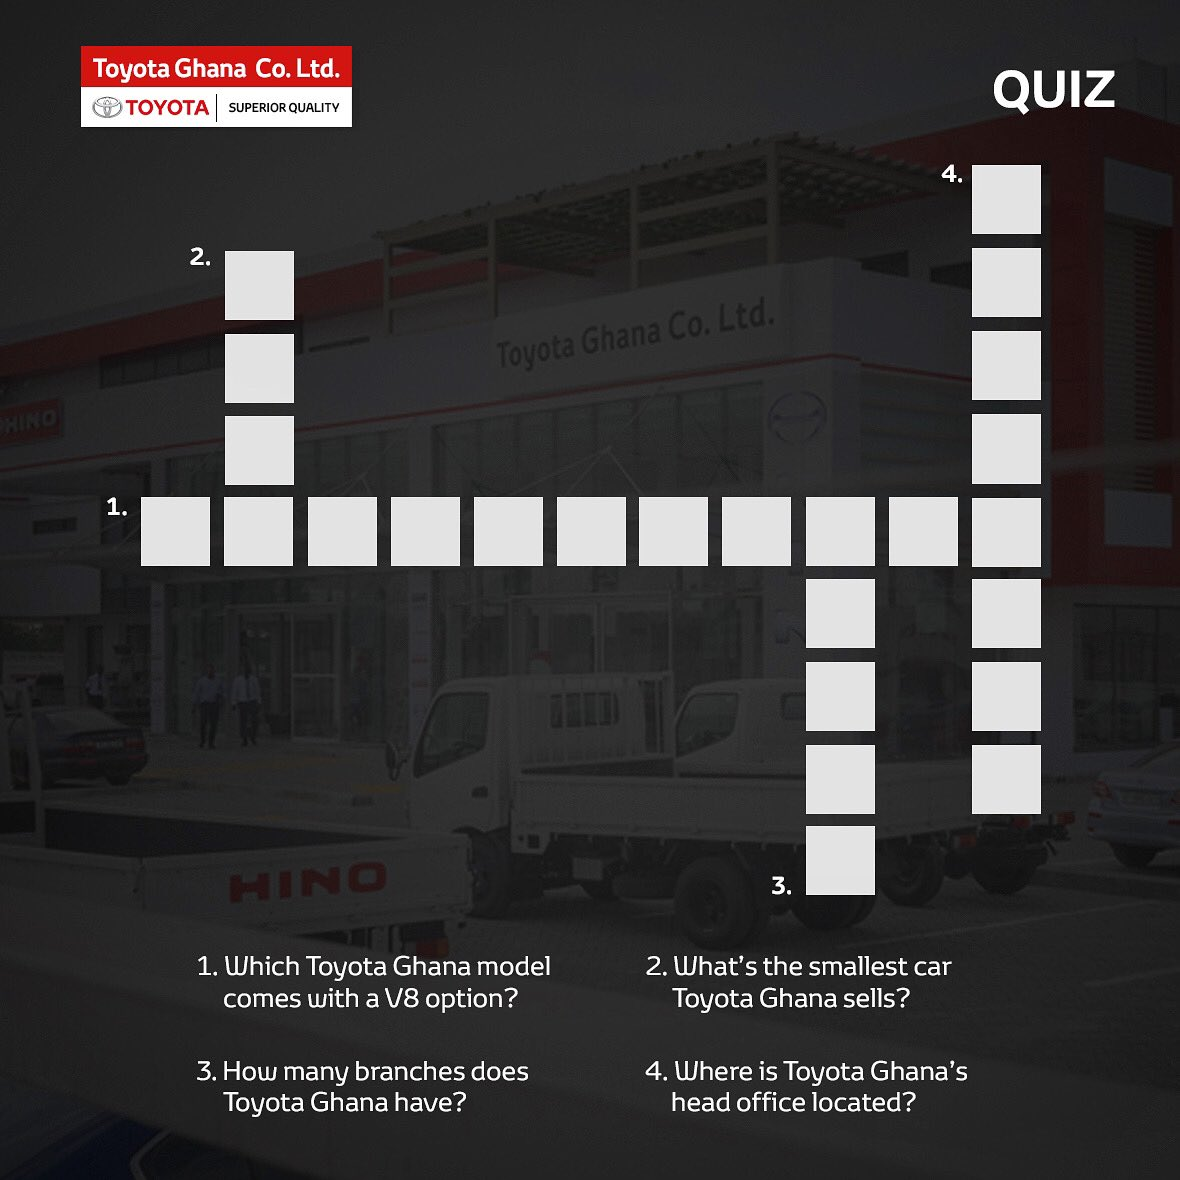 Let's test your knowledge.  #Saturday #Weekend #Trivia #Quiz #Toyota #Ghana #ToyotaGhana #SuperiorQualitypic.twitter.com/215NWL4caL